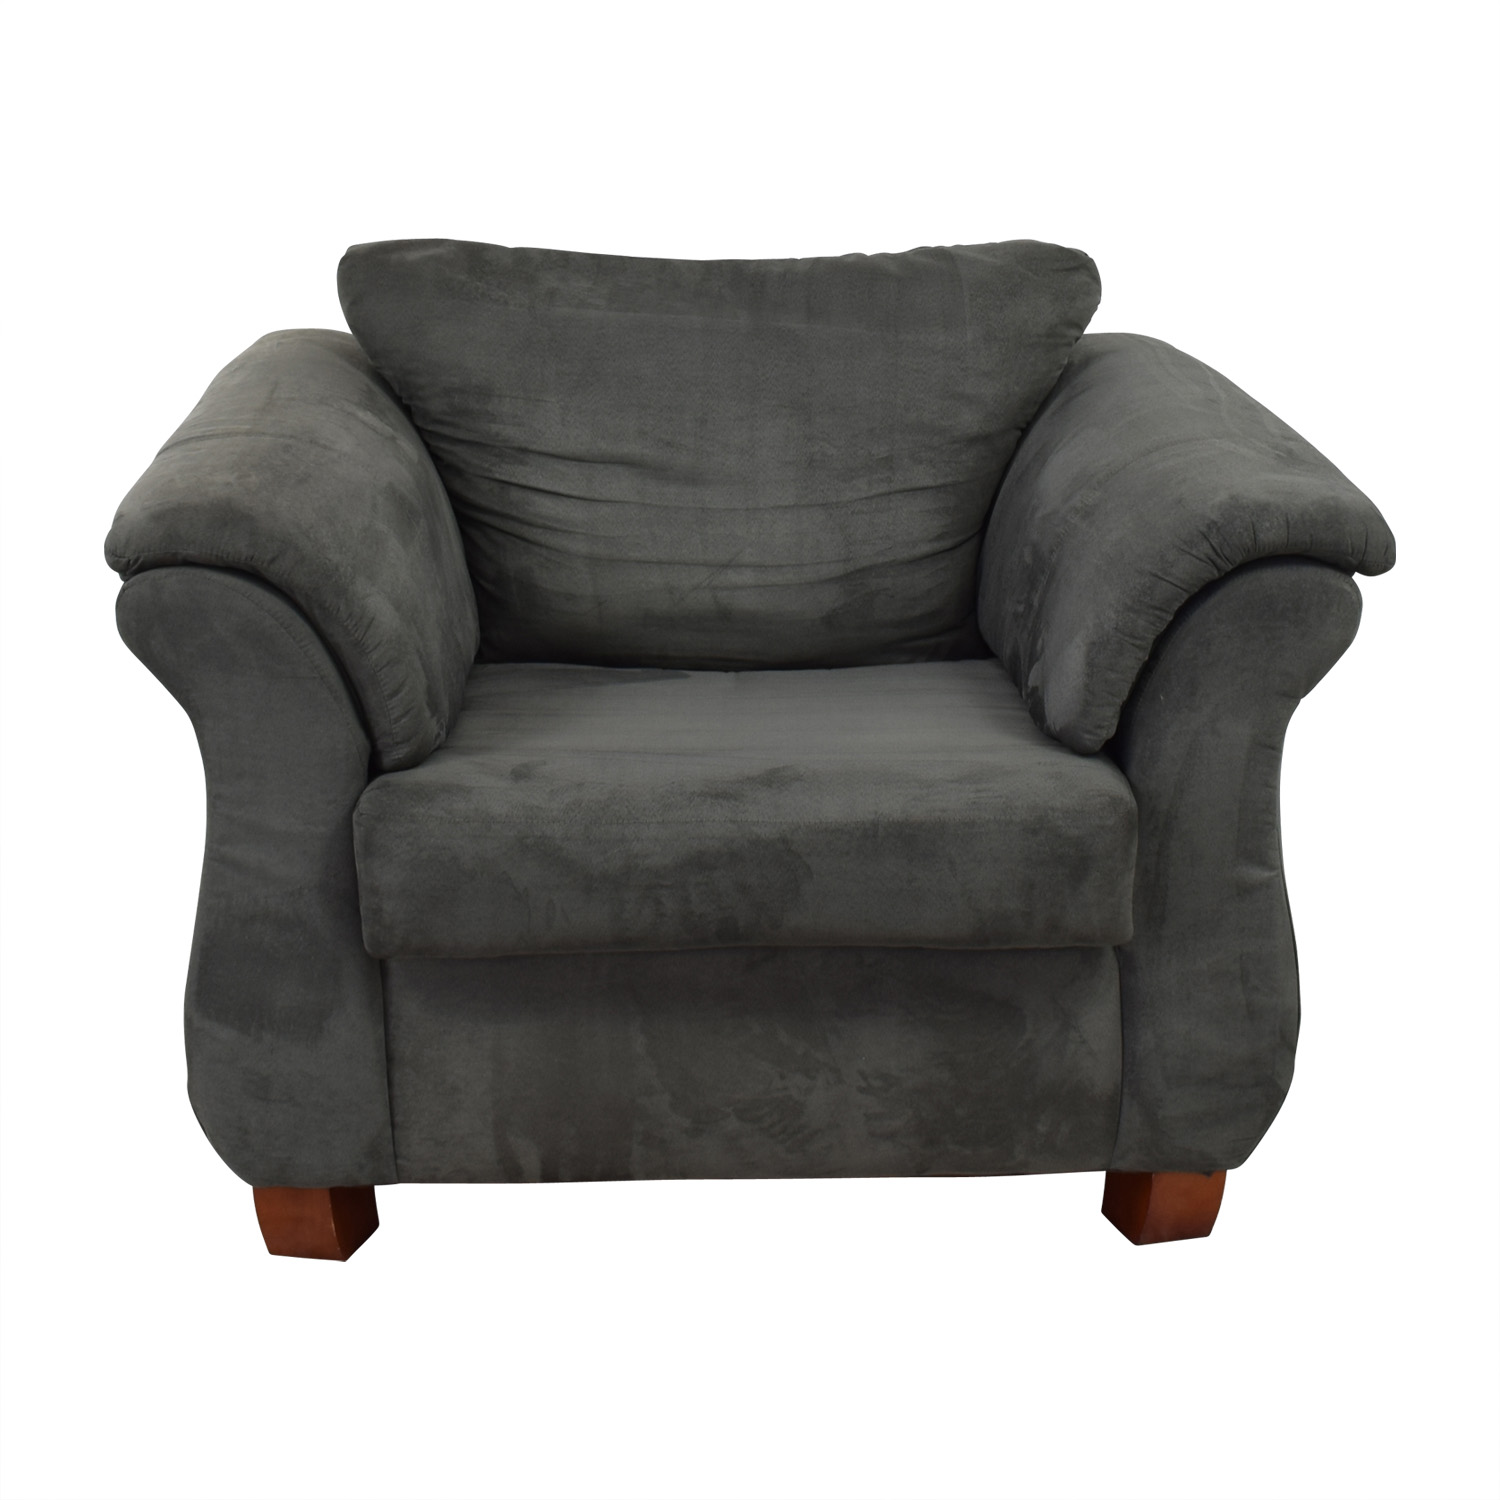 seat linen recliner sofa sleeper unbelievable picture grey isunda for slipcover and cover karlstad inspiration best style loveseat popular gray